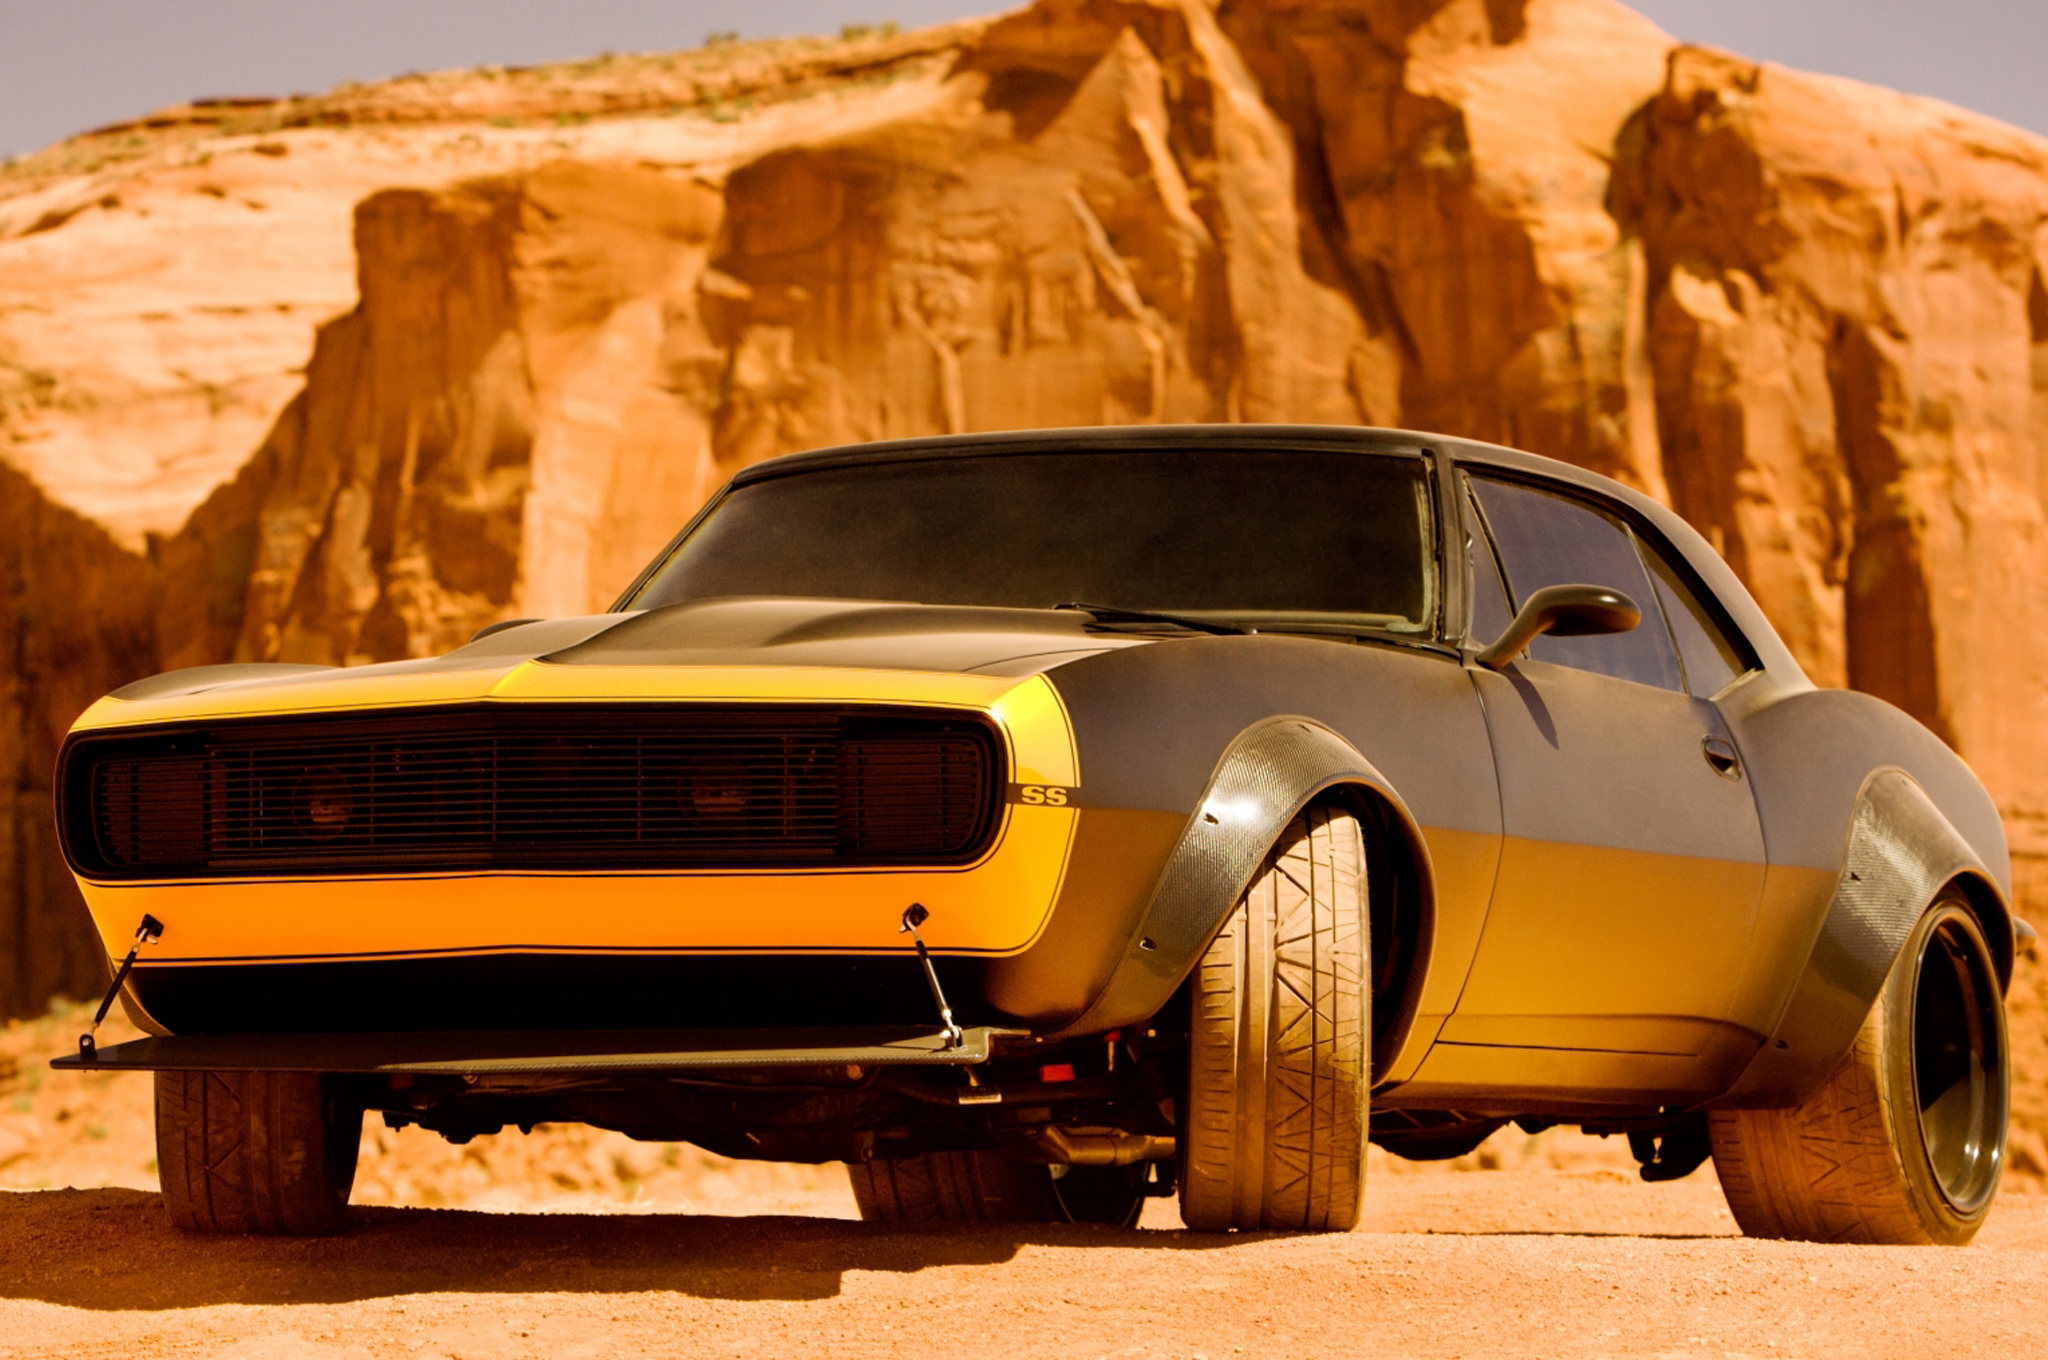 transformers 4 images bumblebee 1 hd wallpaper and background photos